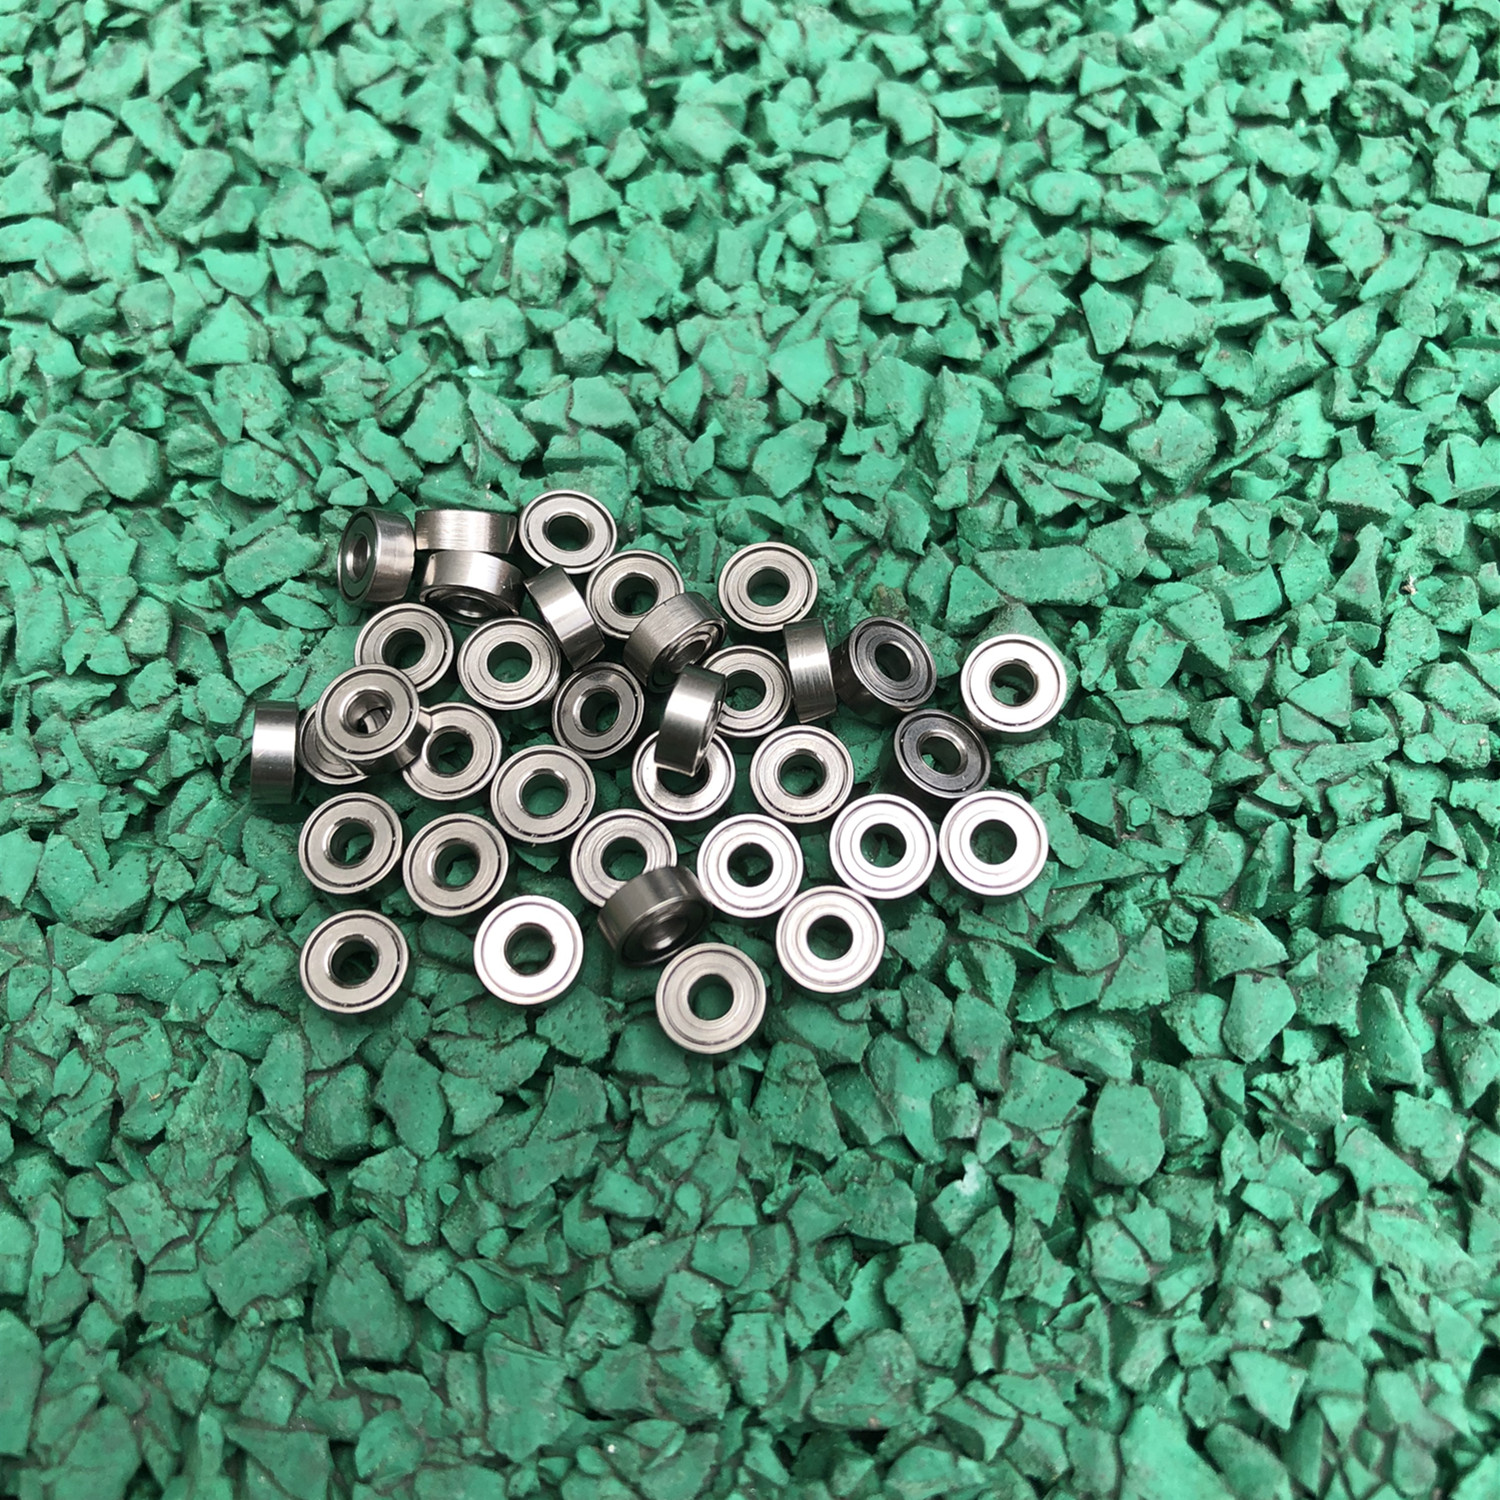 50pcs MR52ZZ MR62ZZ MR63ZZ MR73ZZ Mini Bearings 2x5x2.5 2x6x2.5 3x6x2.5 3x7x2 Mm Miniature Deep Groove Ball Bearing